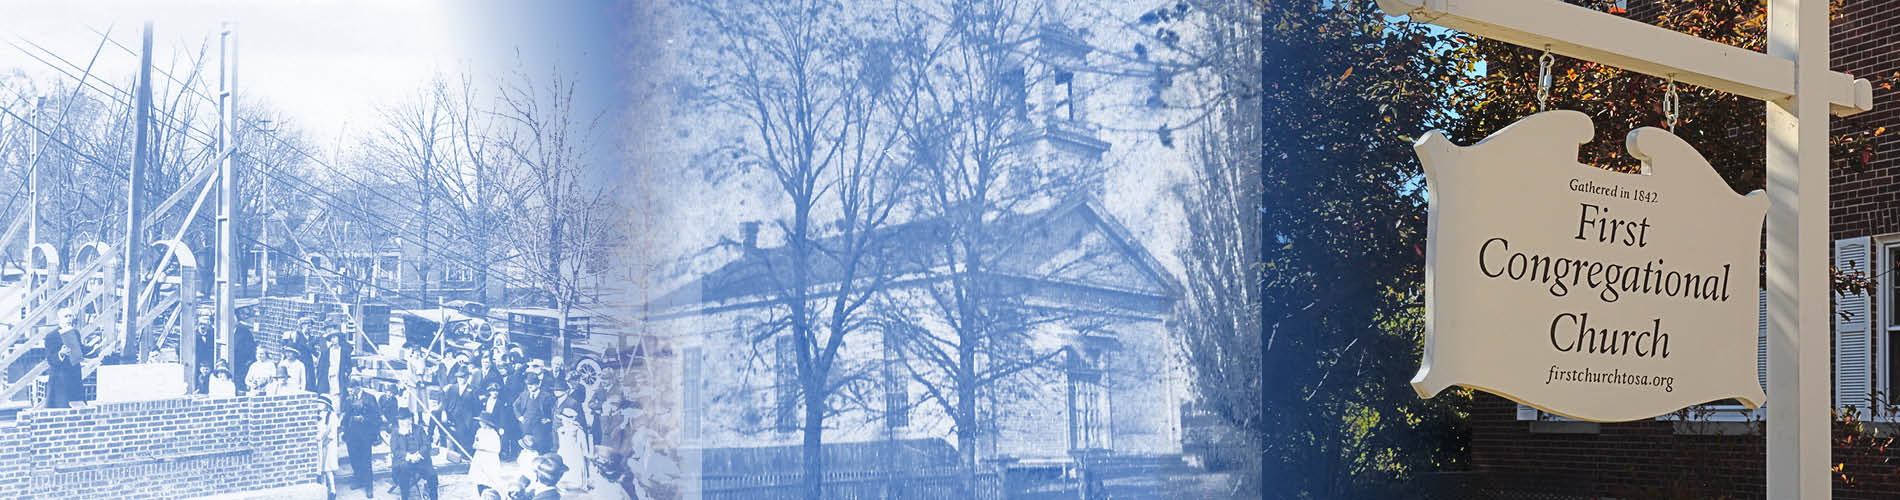 historic views of First Congregational Church